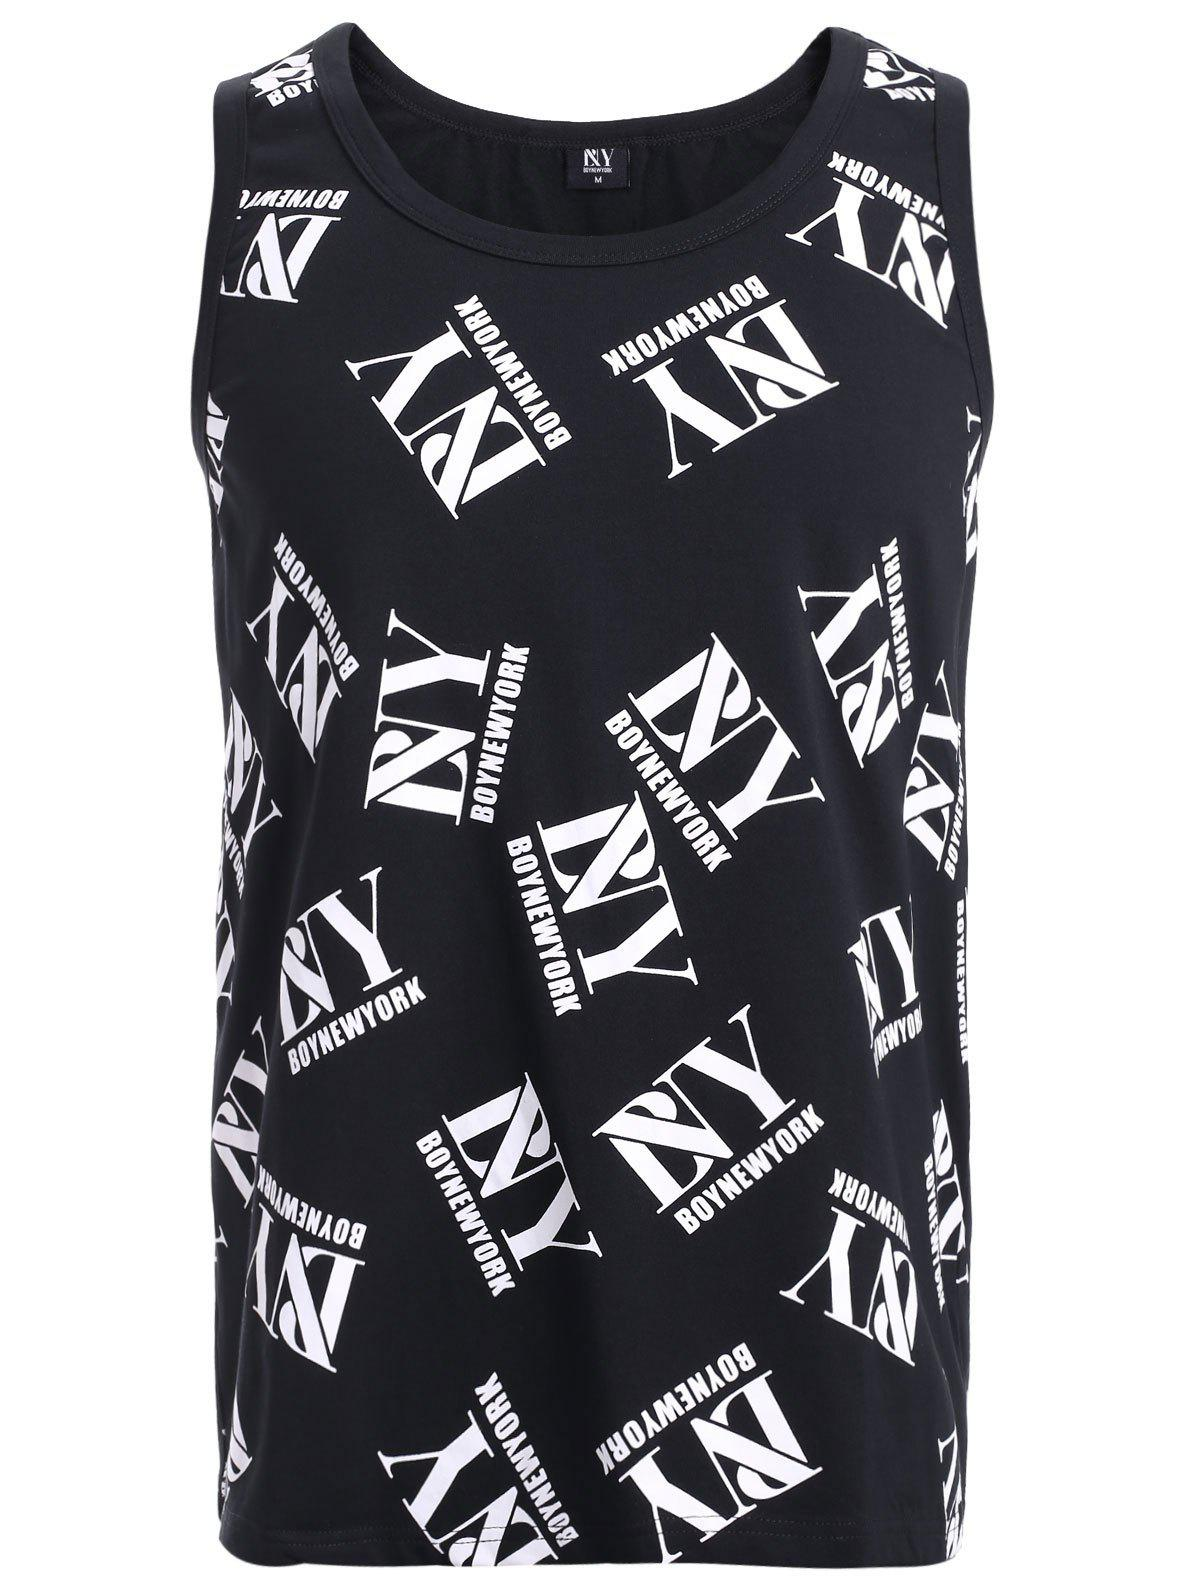 BoyNewYork Fashion Tank Top - XL BLACK